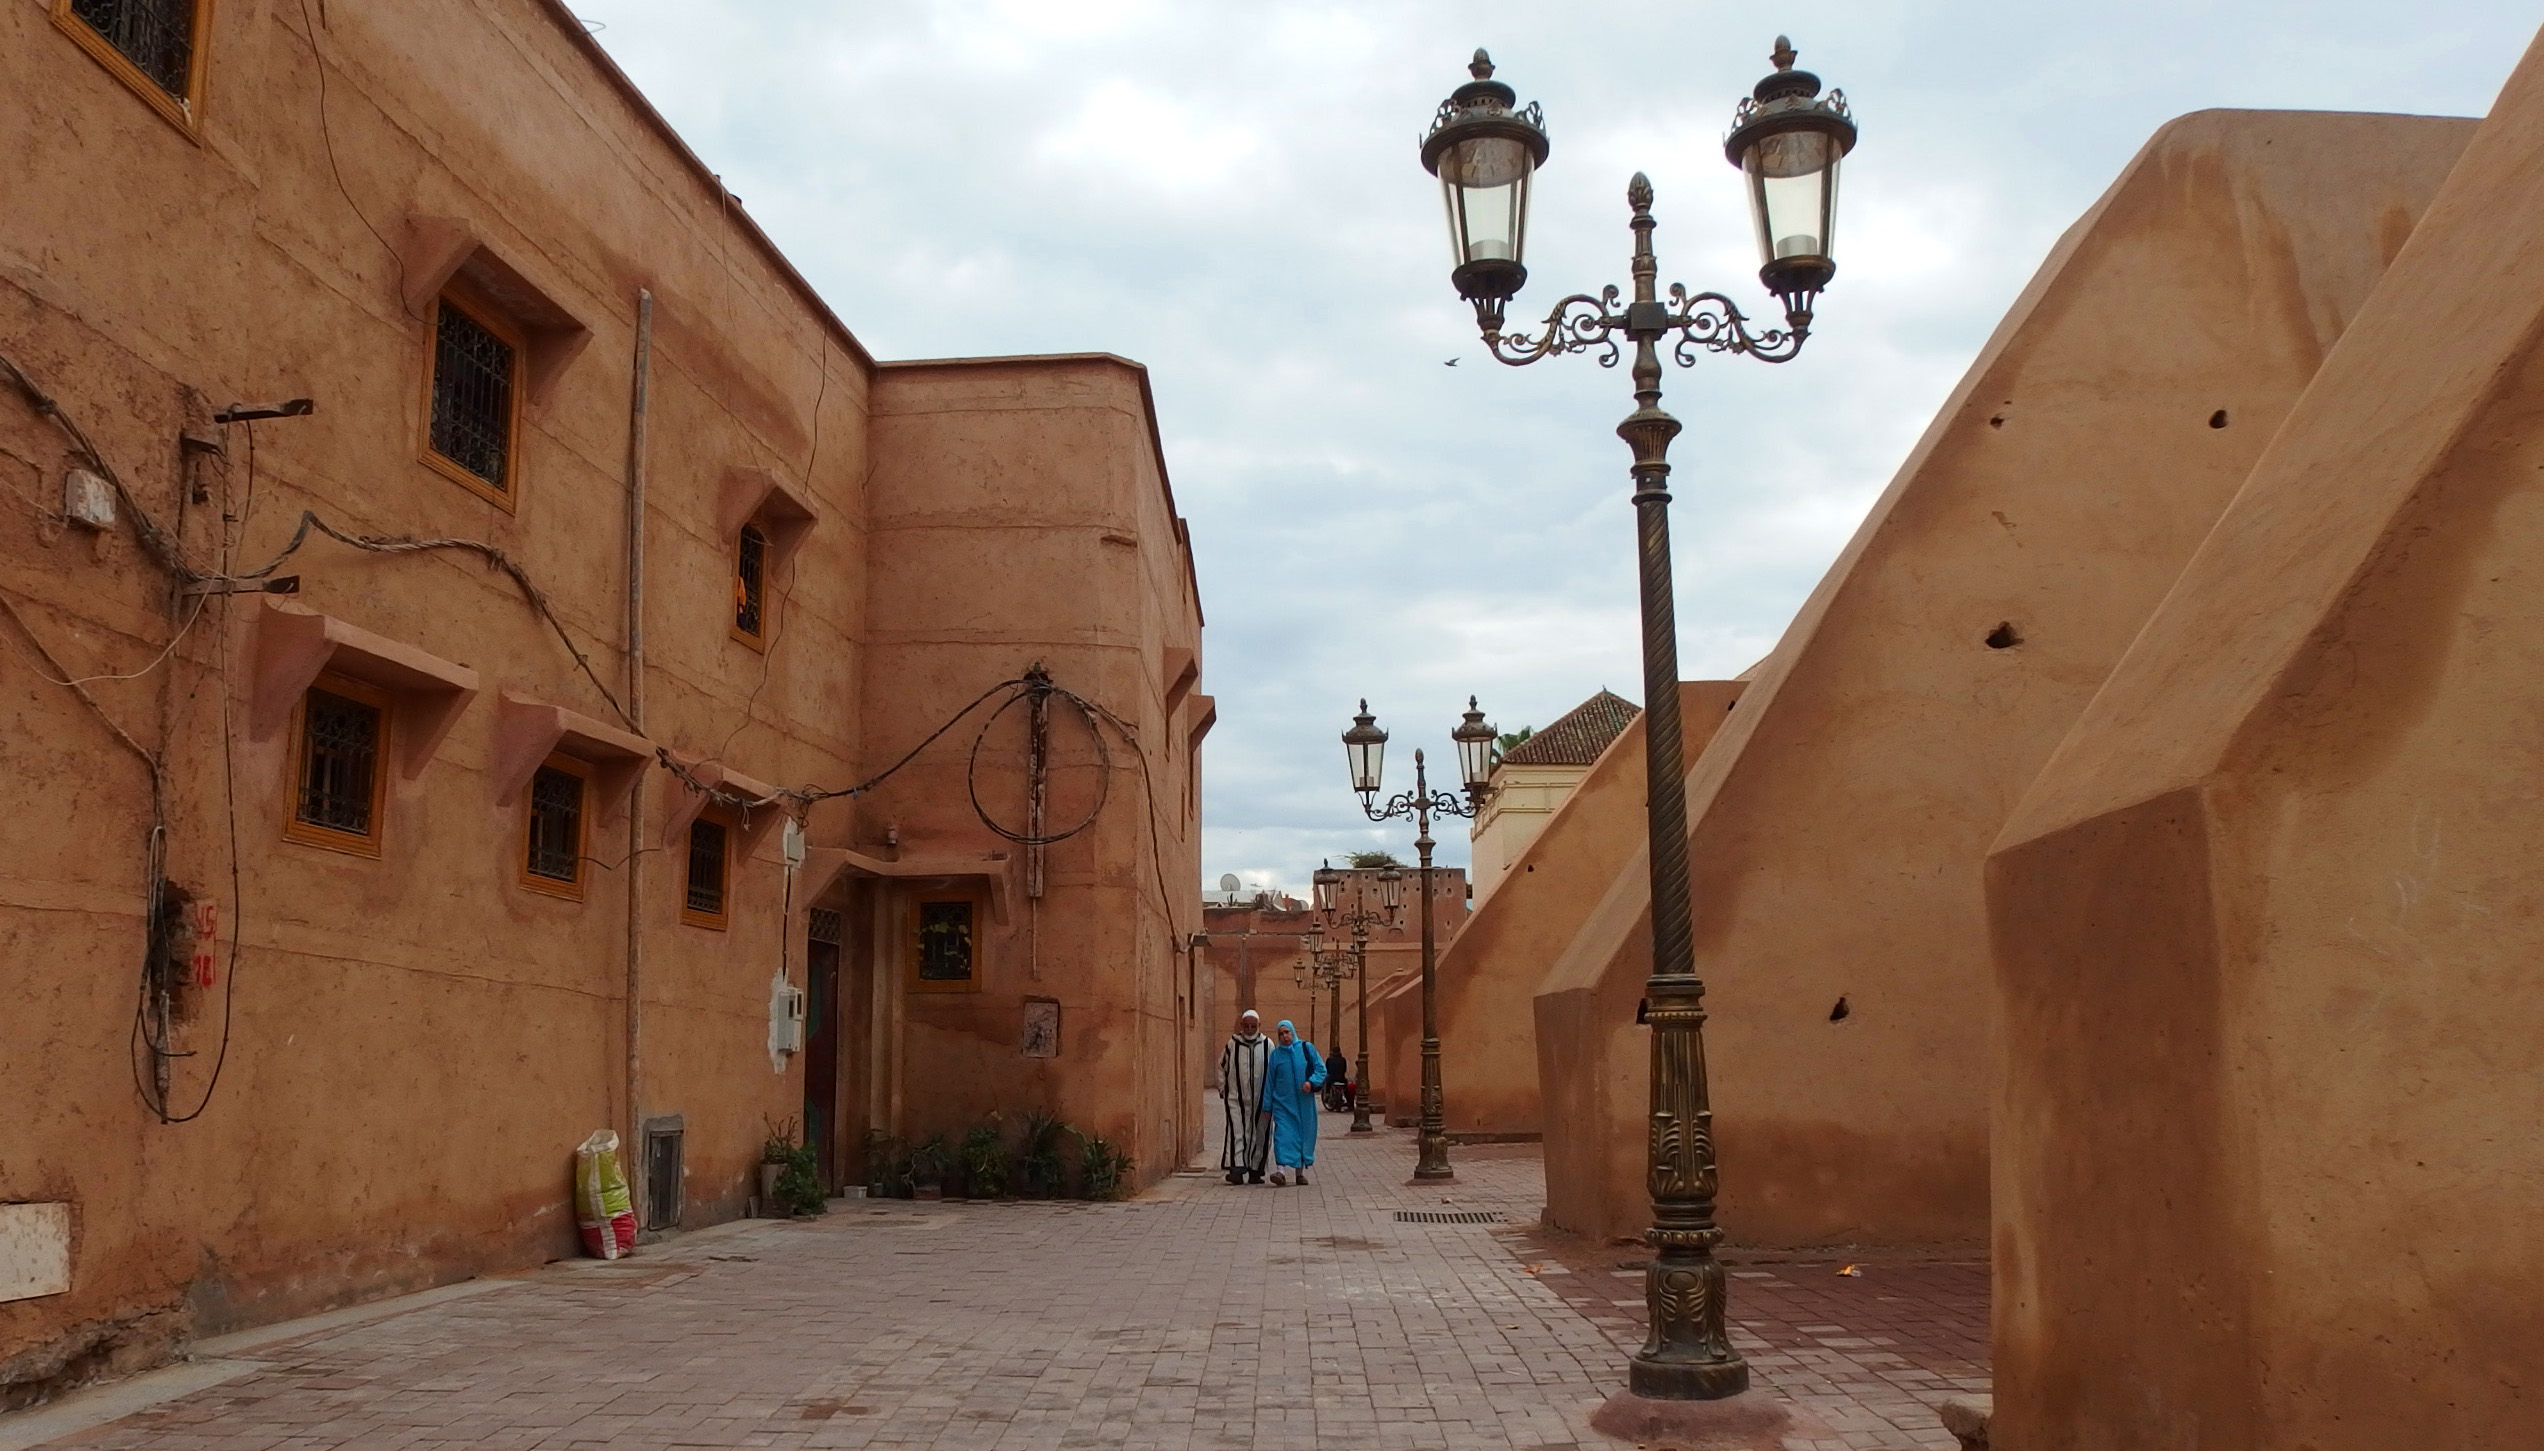 10 things you can expect in Marrakech